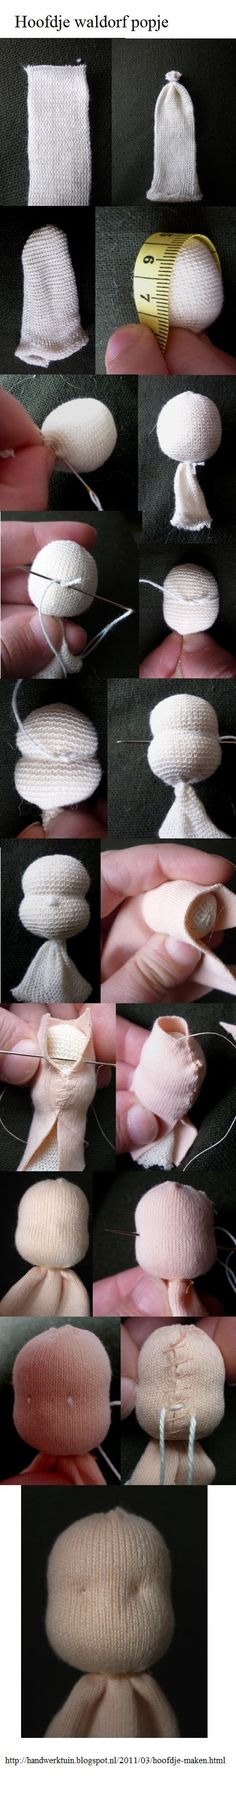 Excellent Photographs Sewing ideas for dolls Popular Waldorf doll Sock Dolls, Doll Toys, Rag Dolls, Tiny Dolls, Cute Dolls, Homemade Dolls, Doll Tutorial, Sewing Dolls, Waldorf Dolls